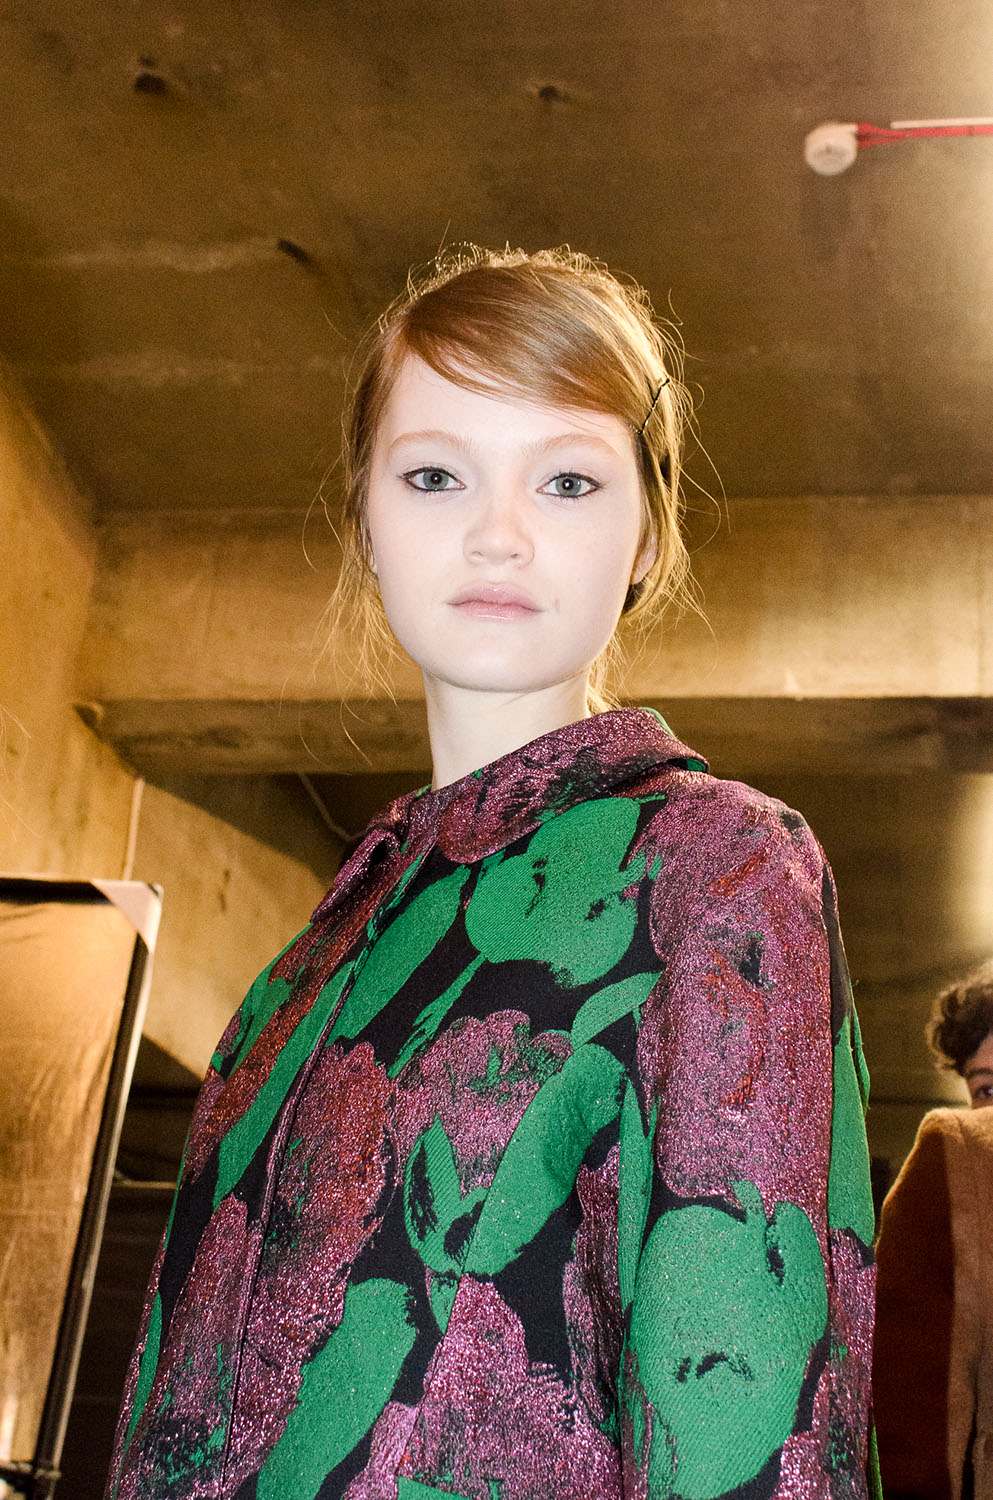 Erdem AW15 for Vogue.com